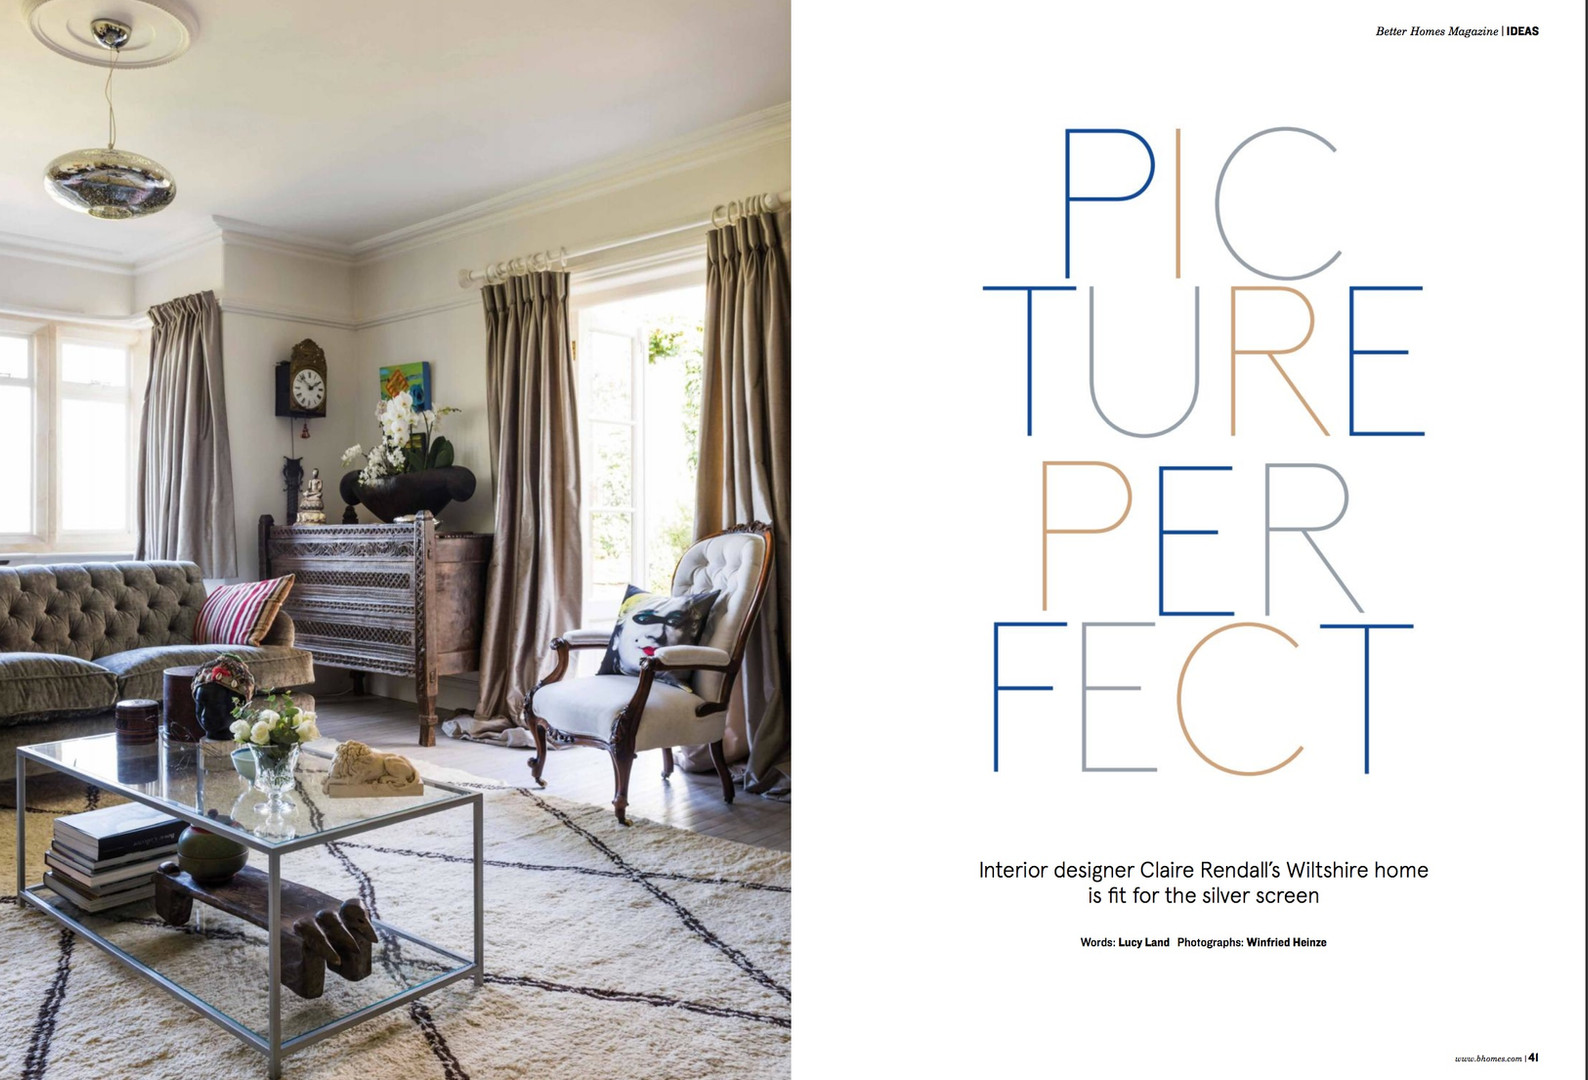 Claire rendall interior design Better Homes Page